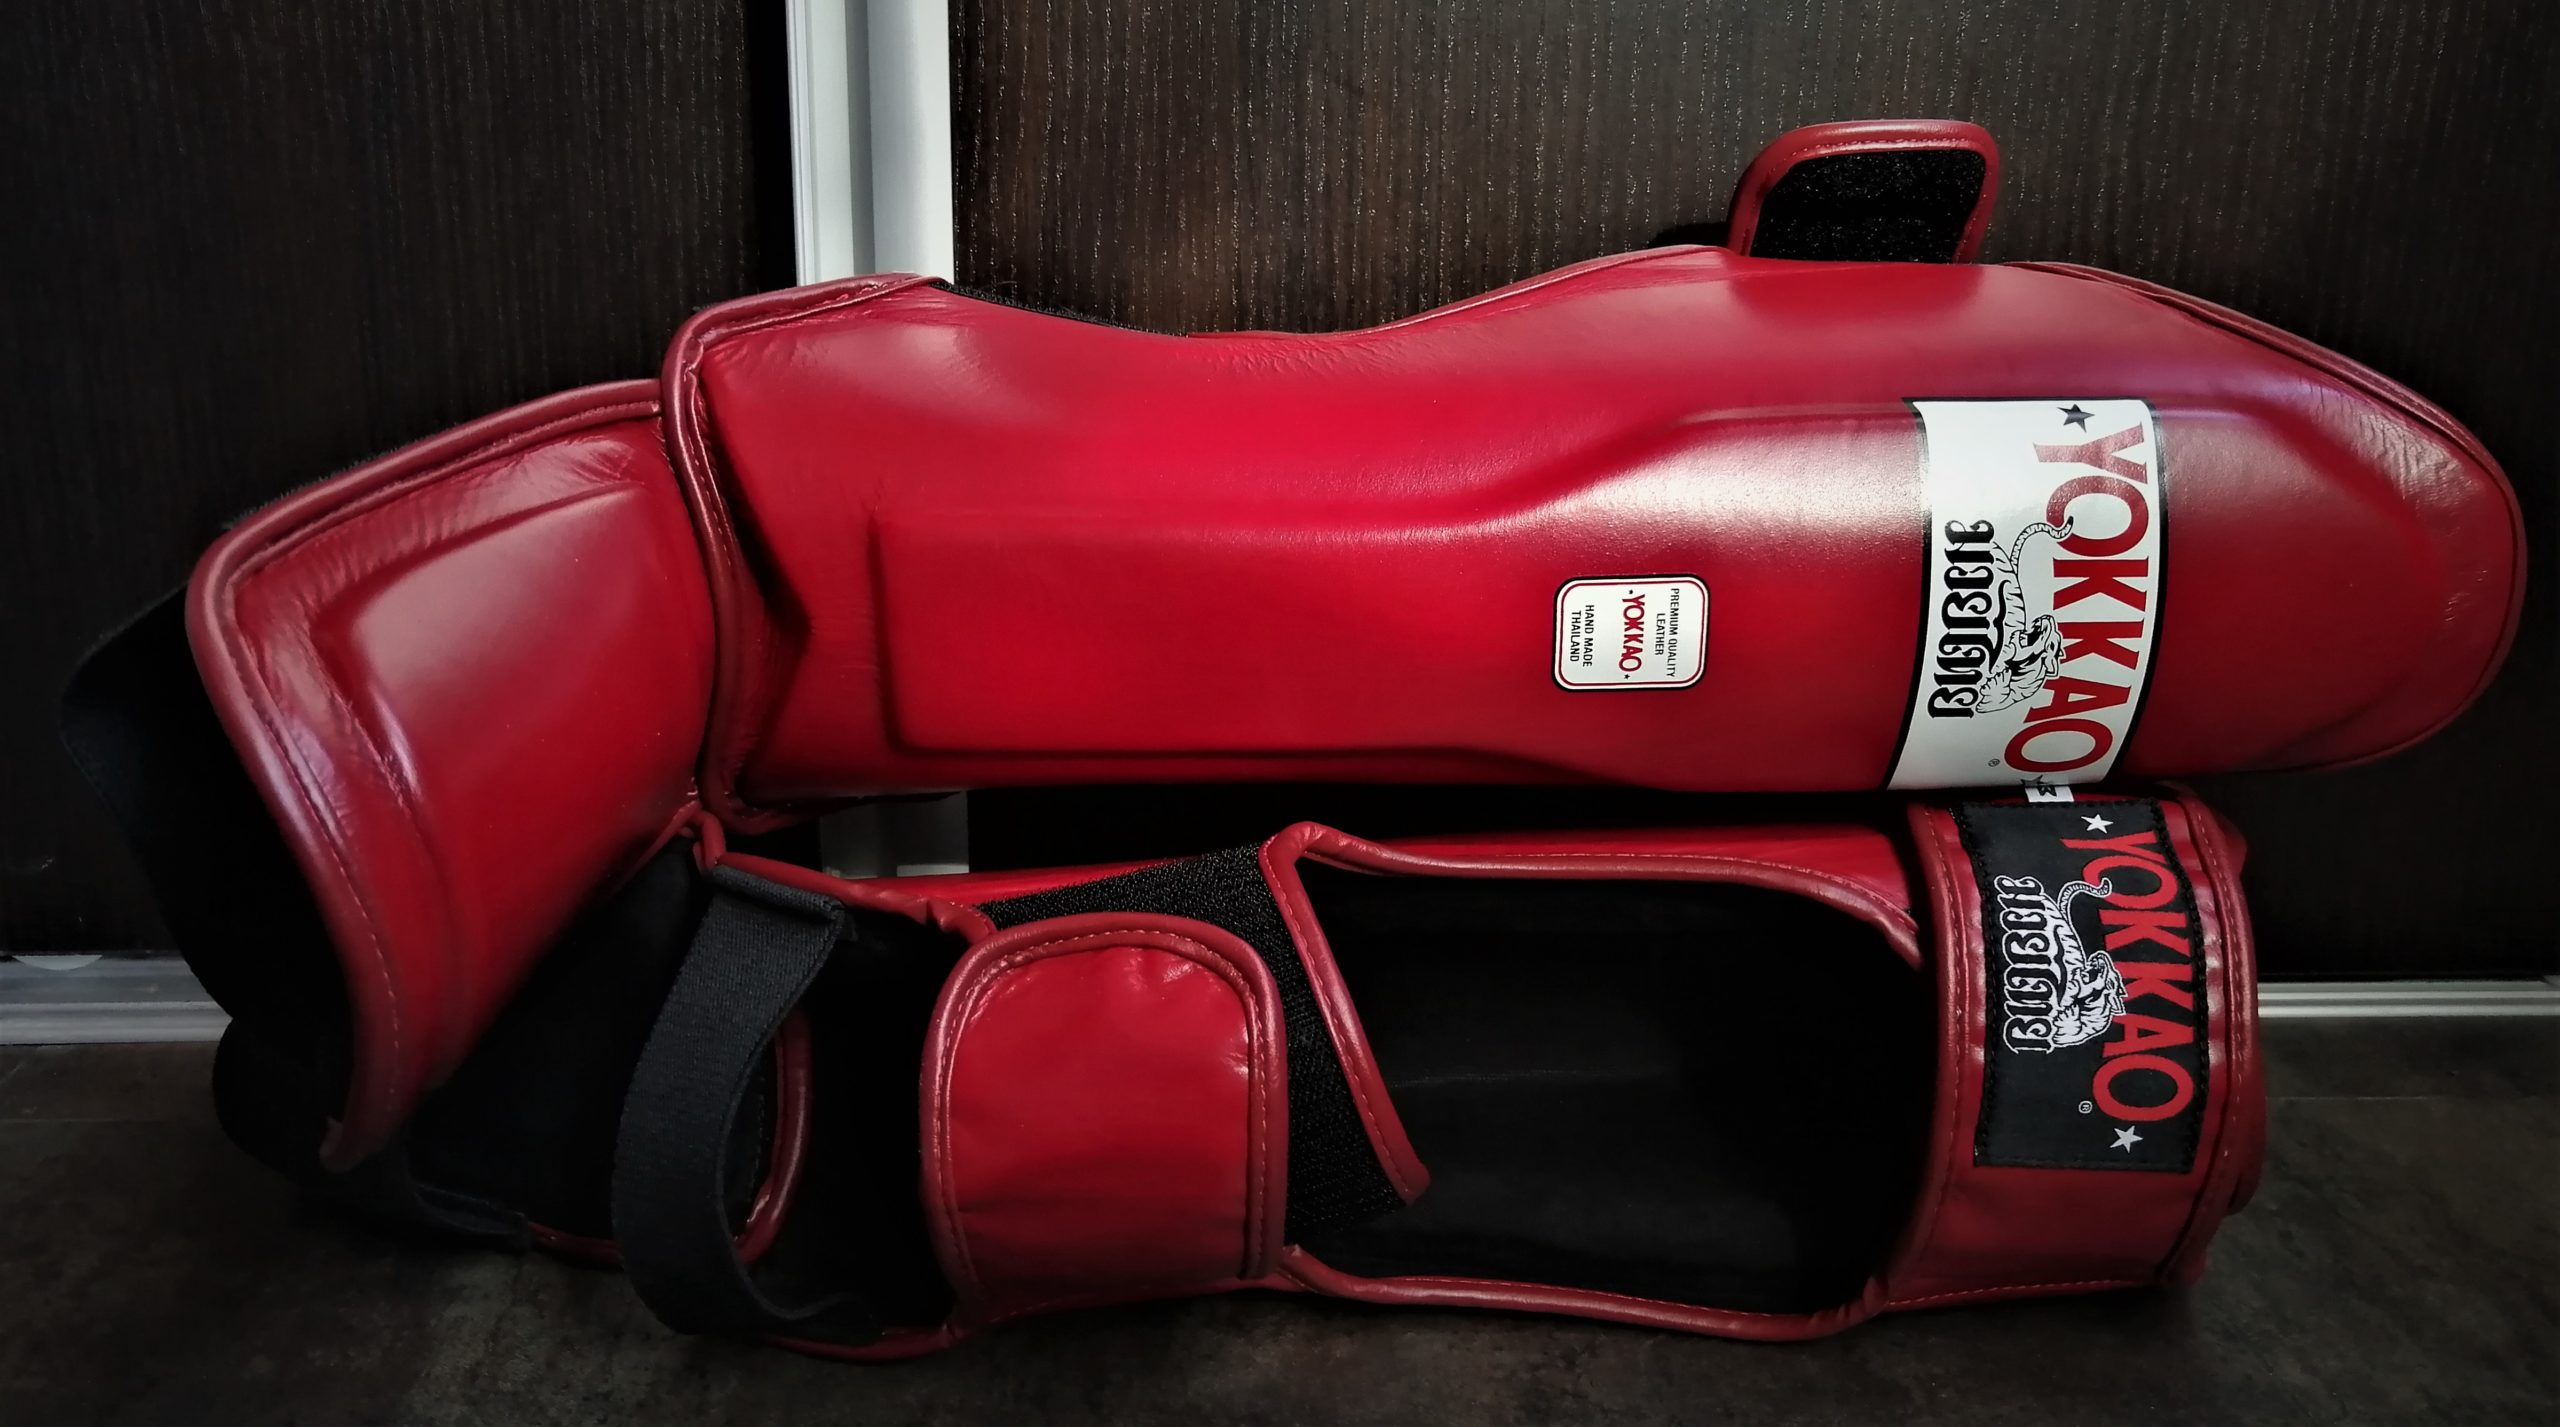 Yokkao Matrix Shin Guards Review